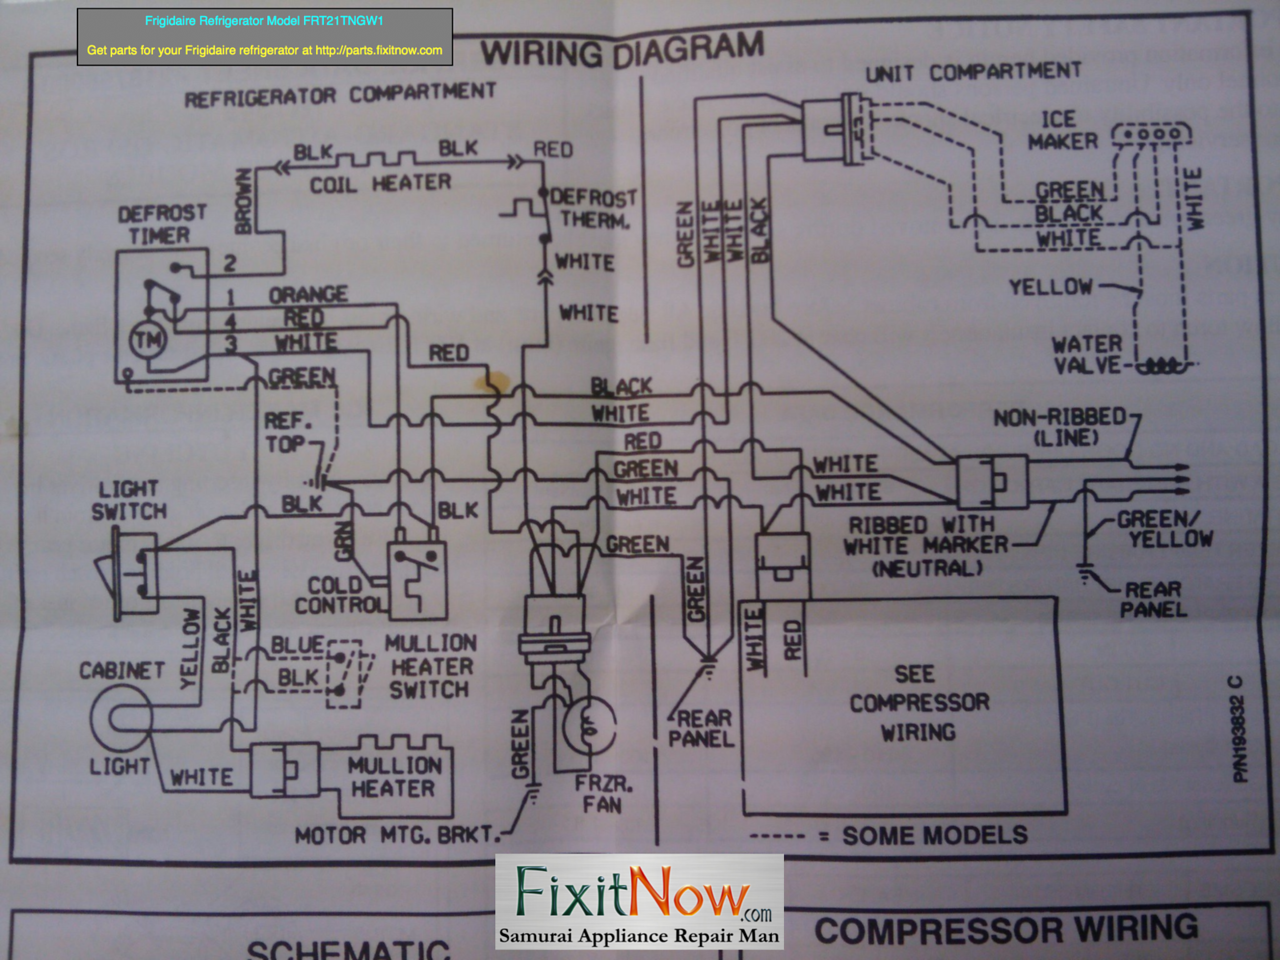 wiring diagrams and schematics appliantology rh appliantology smugmug com  appliance repair wiring diagrams whirlpool appliance wiring diagrams